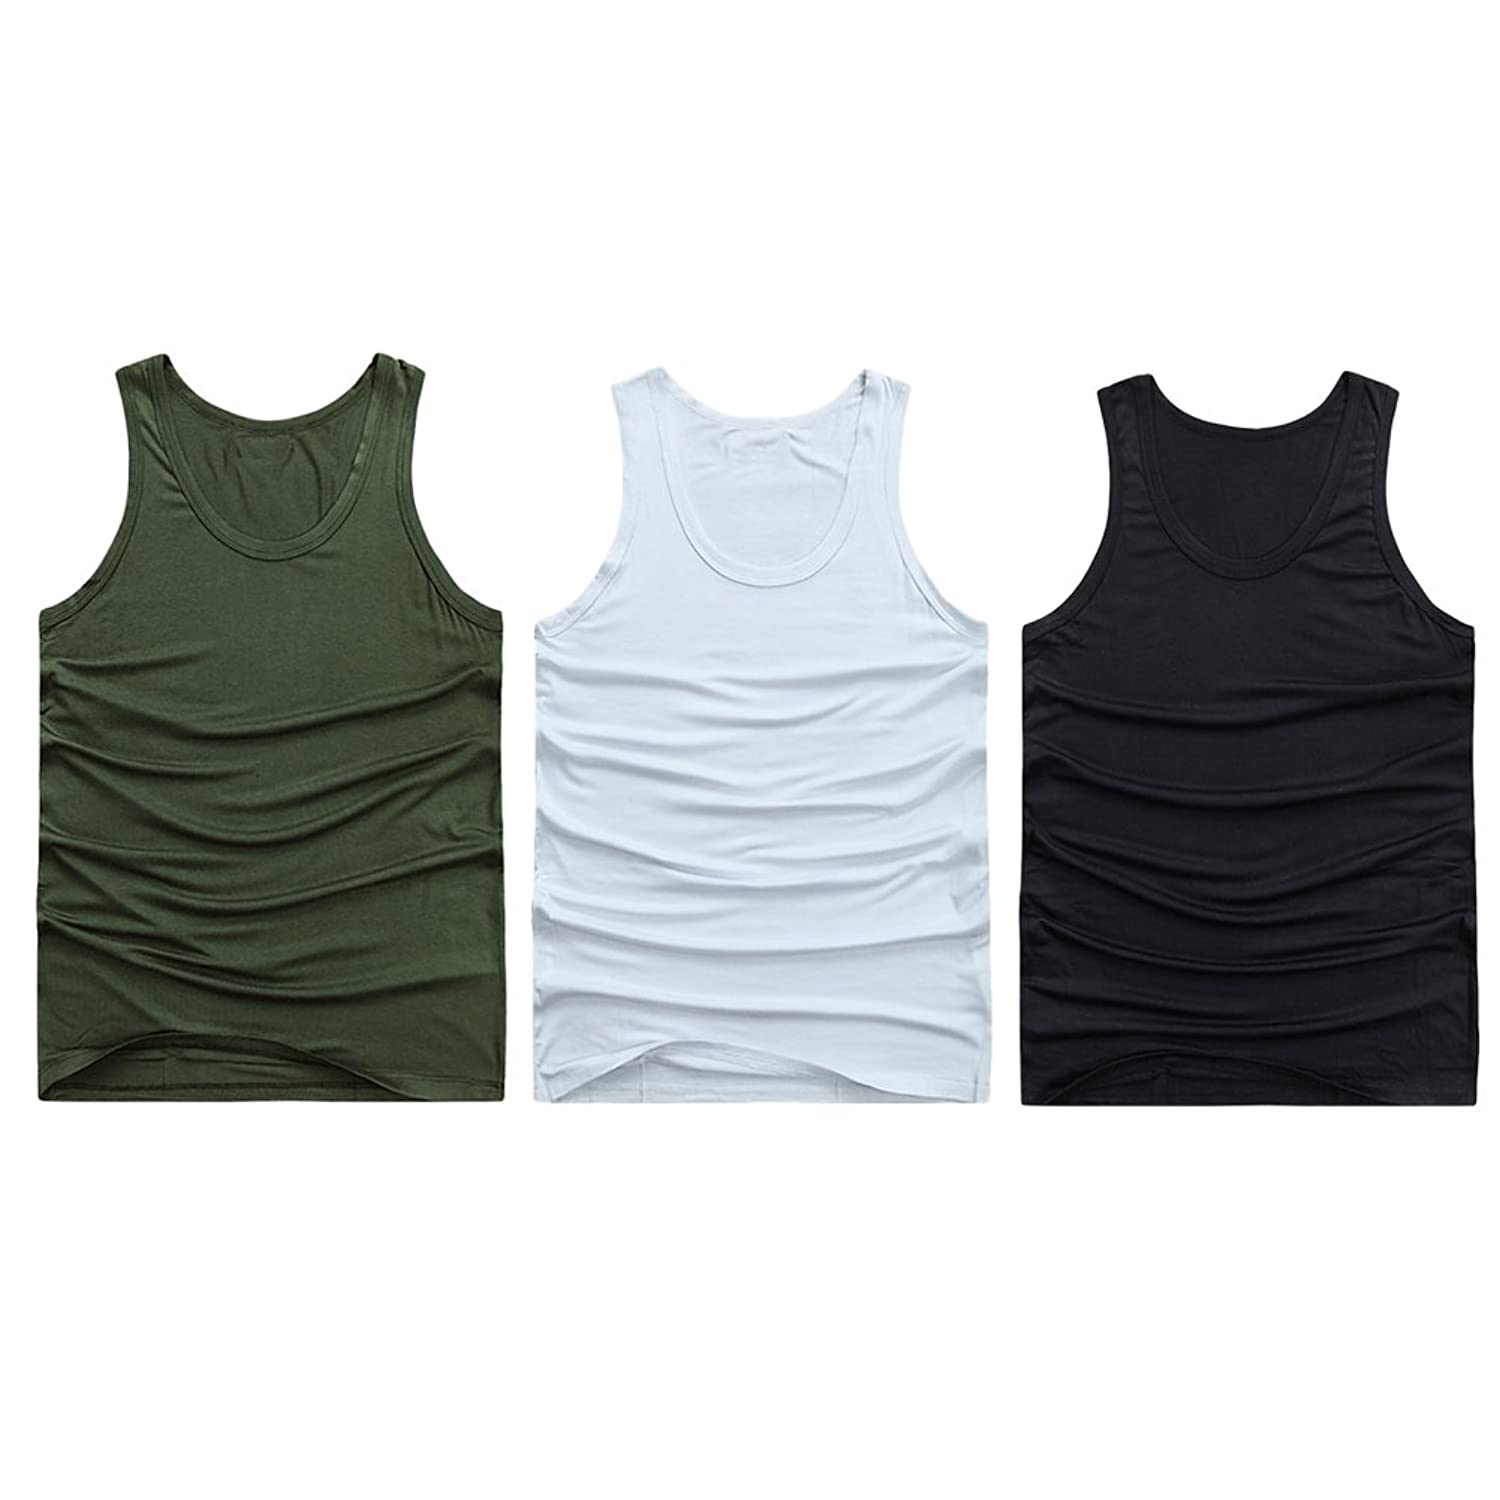 Zhuhaitf メンズタンクトップ Men's Elastic Work Running Soccer Marching Sport Body Shaper Vest Lose Weight Shirt [3 Pack White]